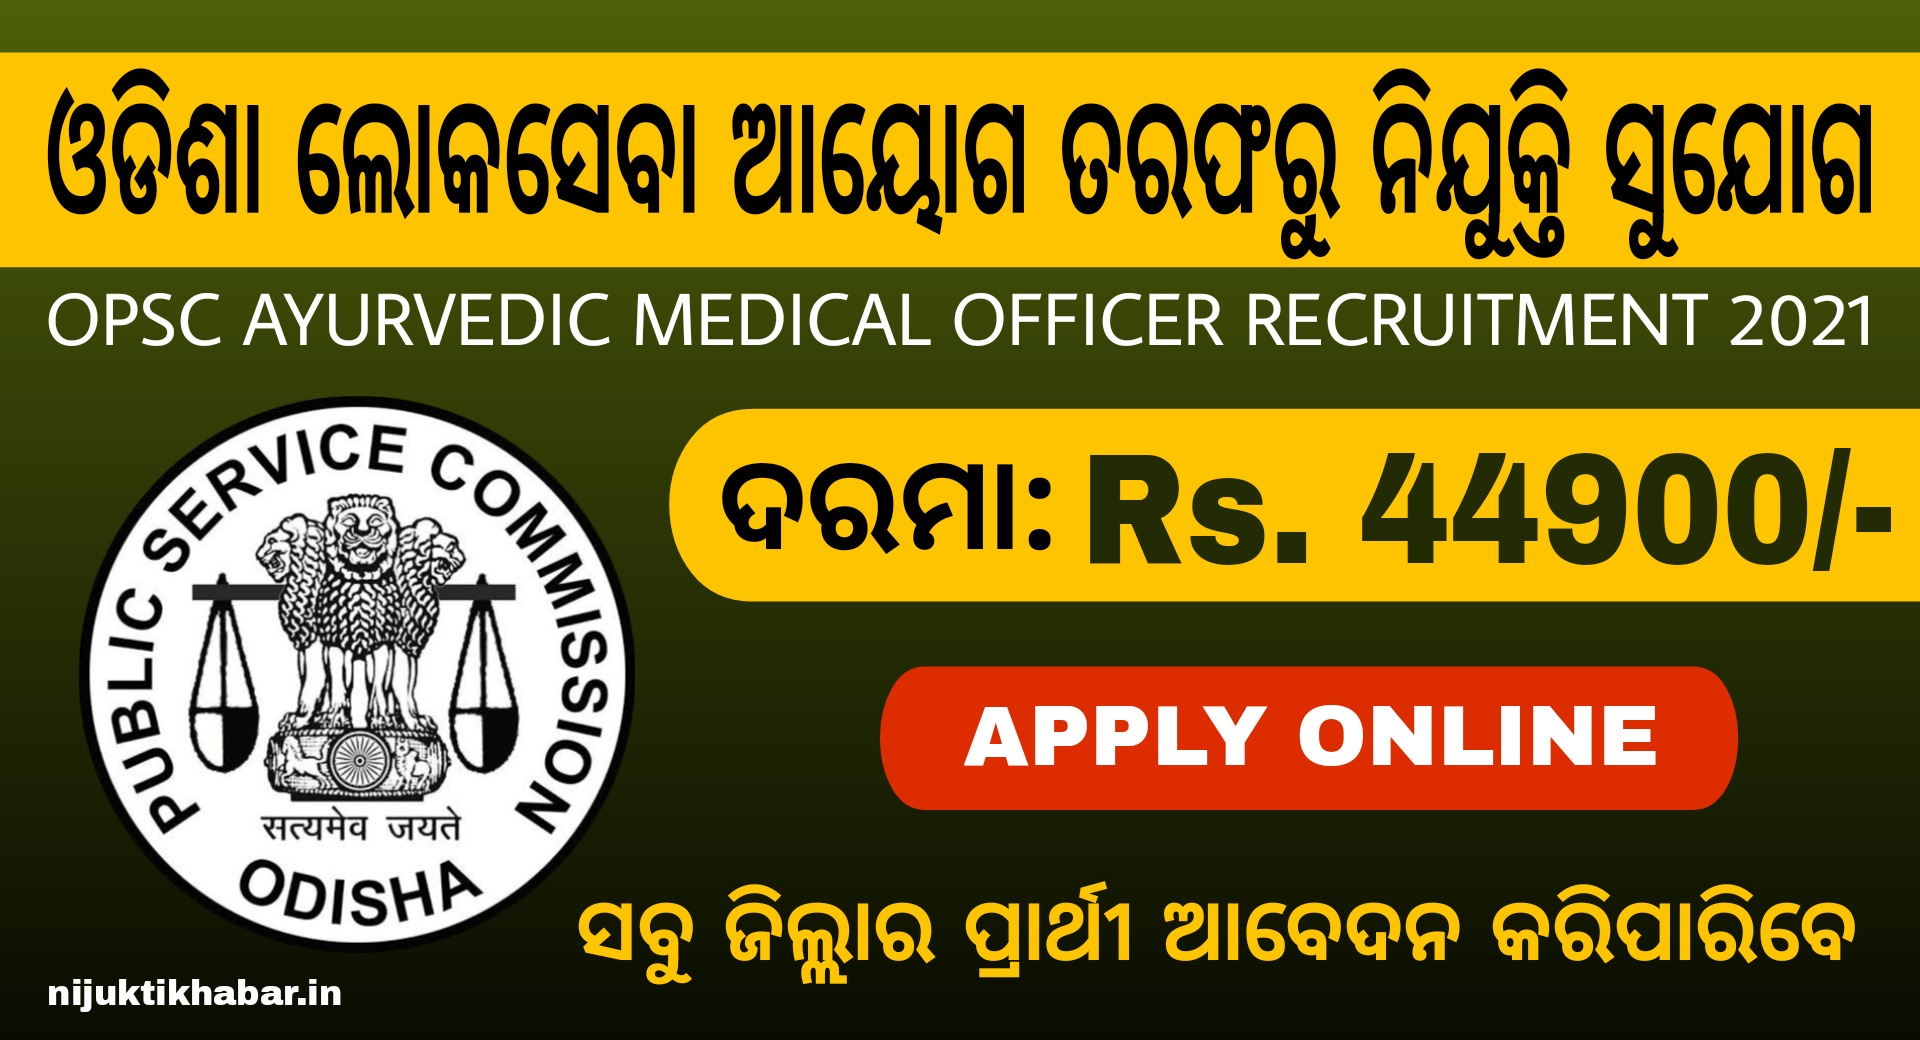 OPSC Ayurvedic Medical Officer Recruitment 2021- Jobs in Odisha